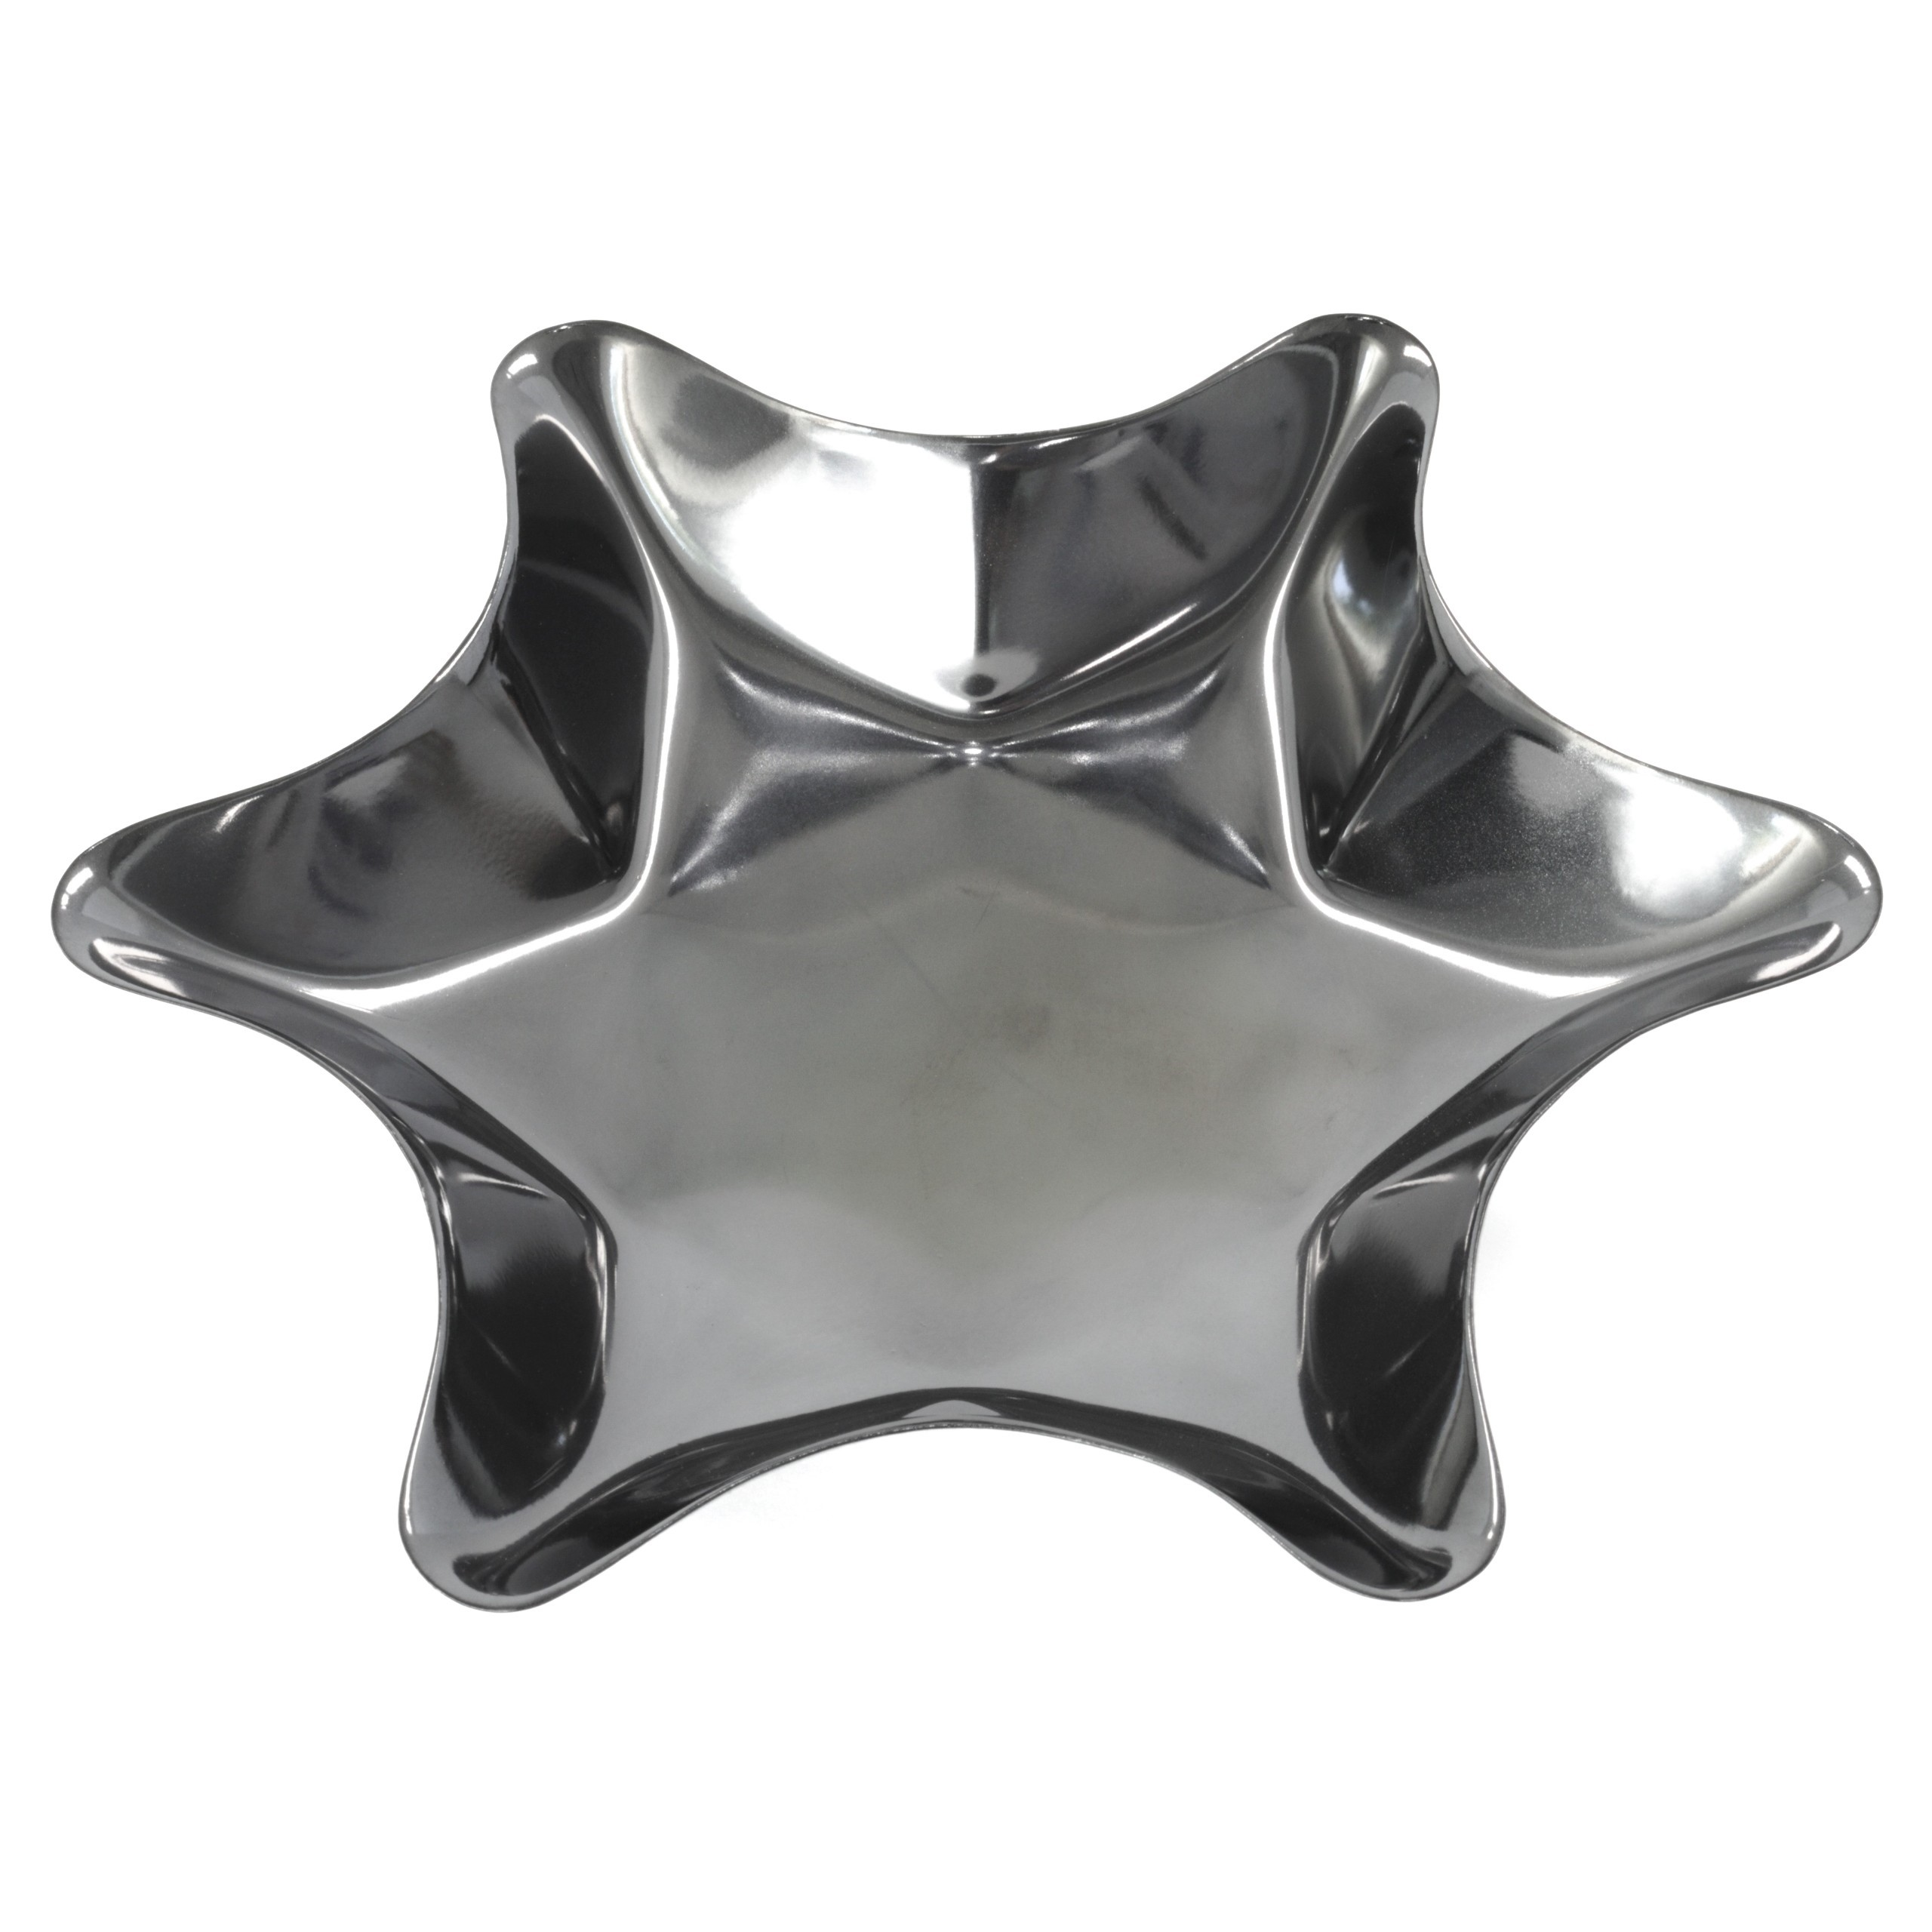 Connor Holland Hydroformed Bowl